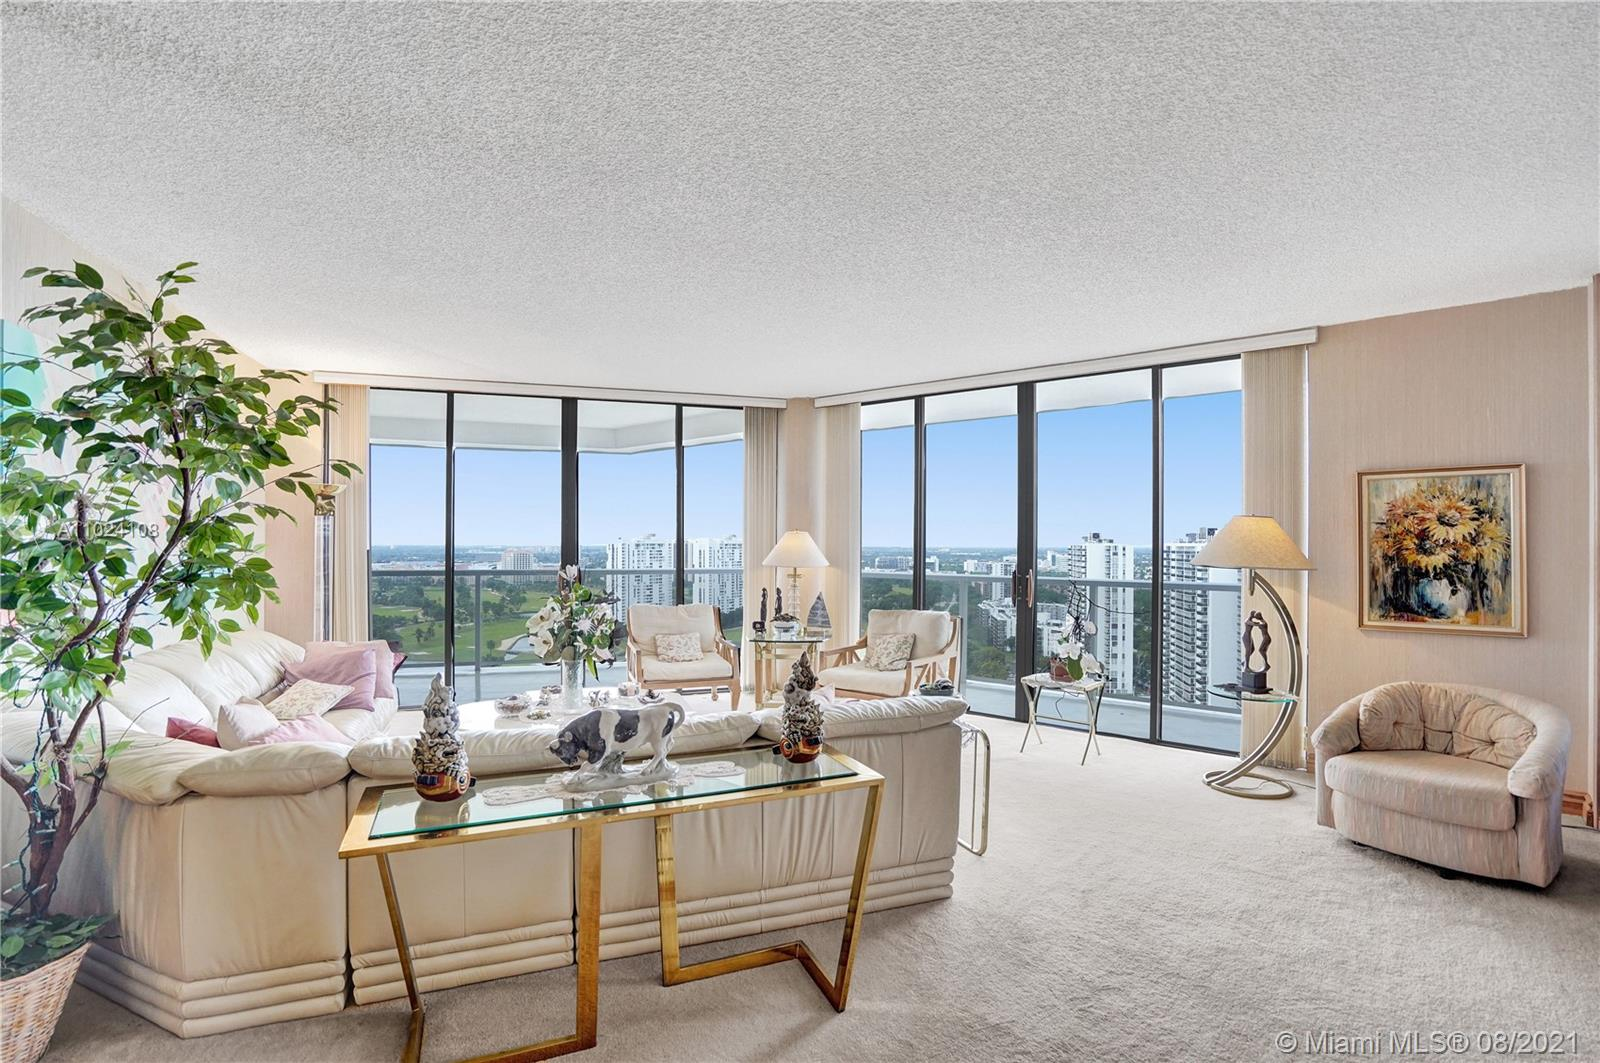 Photo of 20281 Country Club Dr #2407, Aventura, Florida, 33180 - Panoramic views!